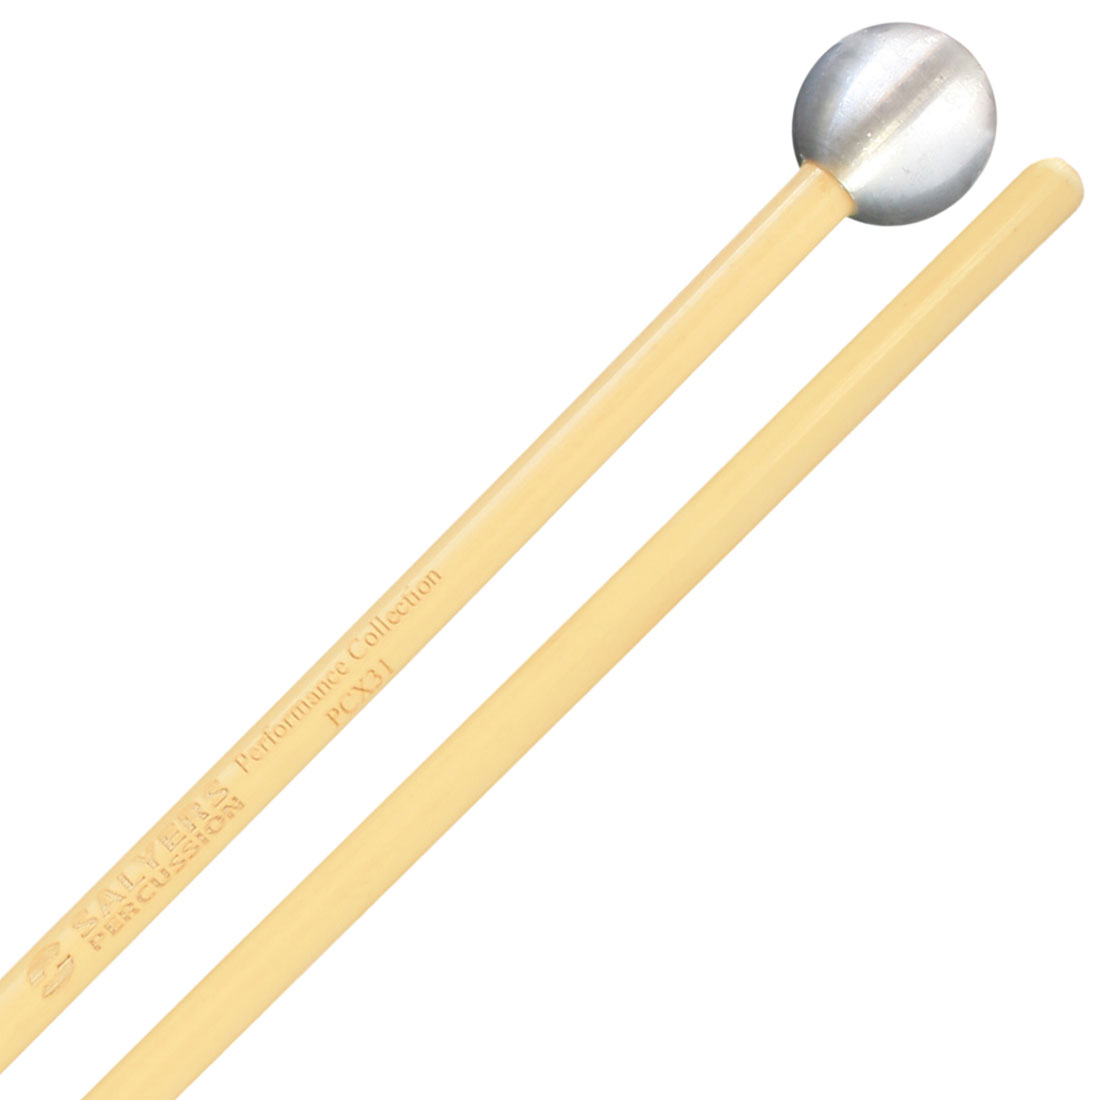 "Salyers Percussion Performance Collection 7/8"" Aluminum Bell Mallets"